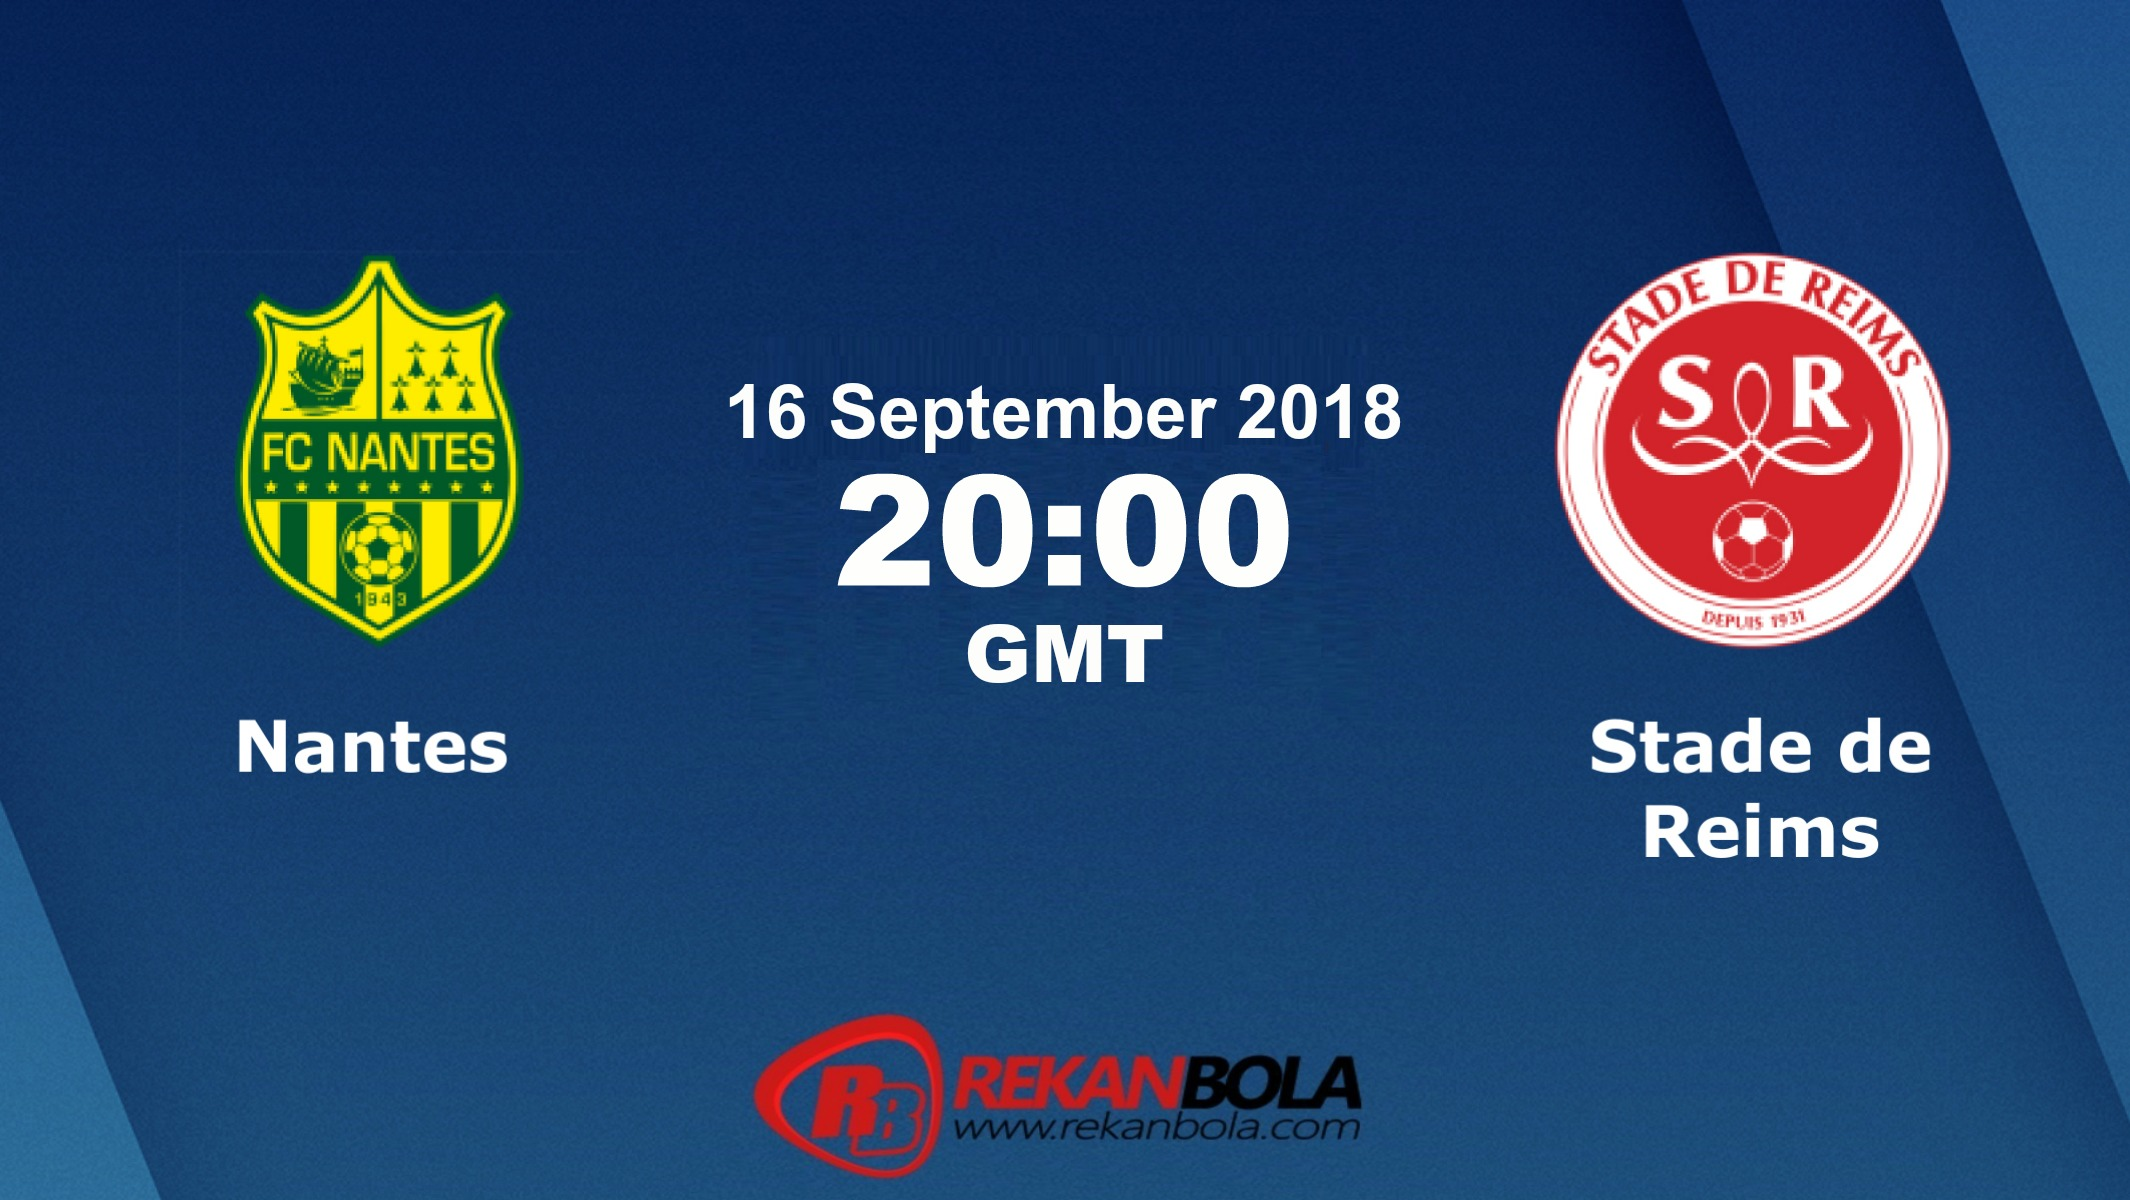 Nonton Siaran Live Streaming Nantes Vs Reims 16 September 2018